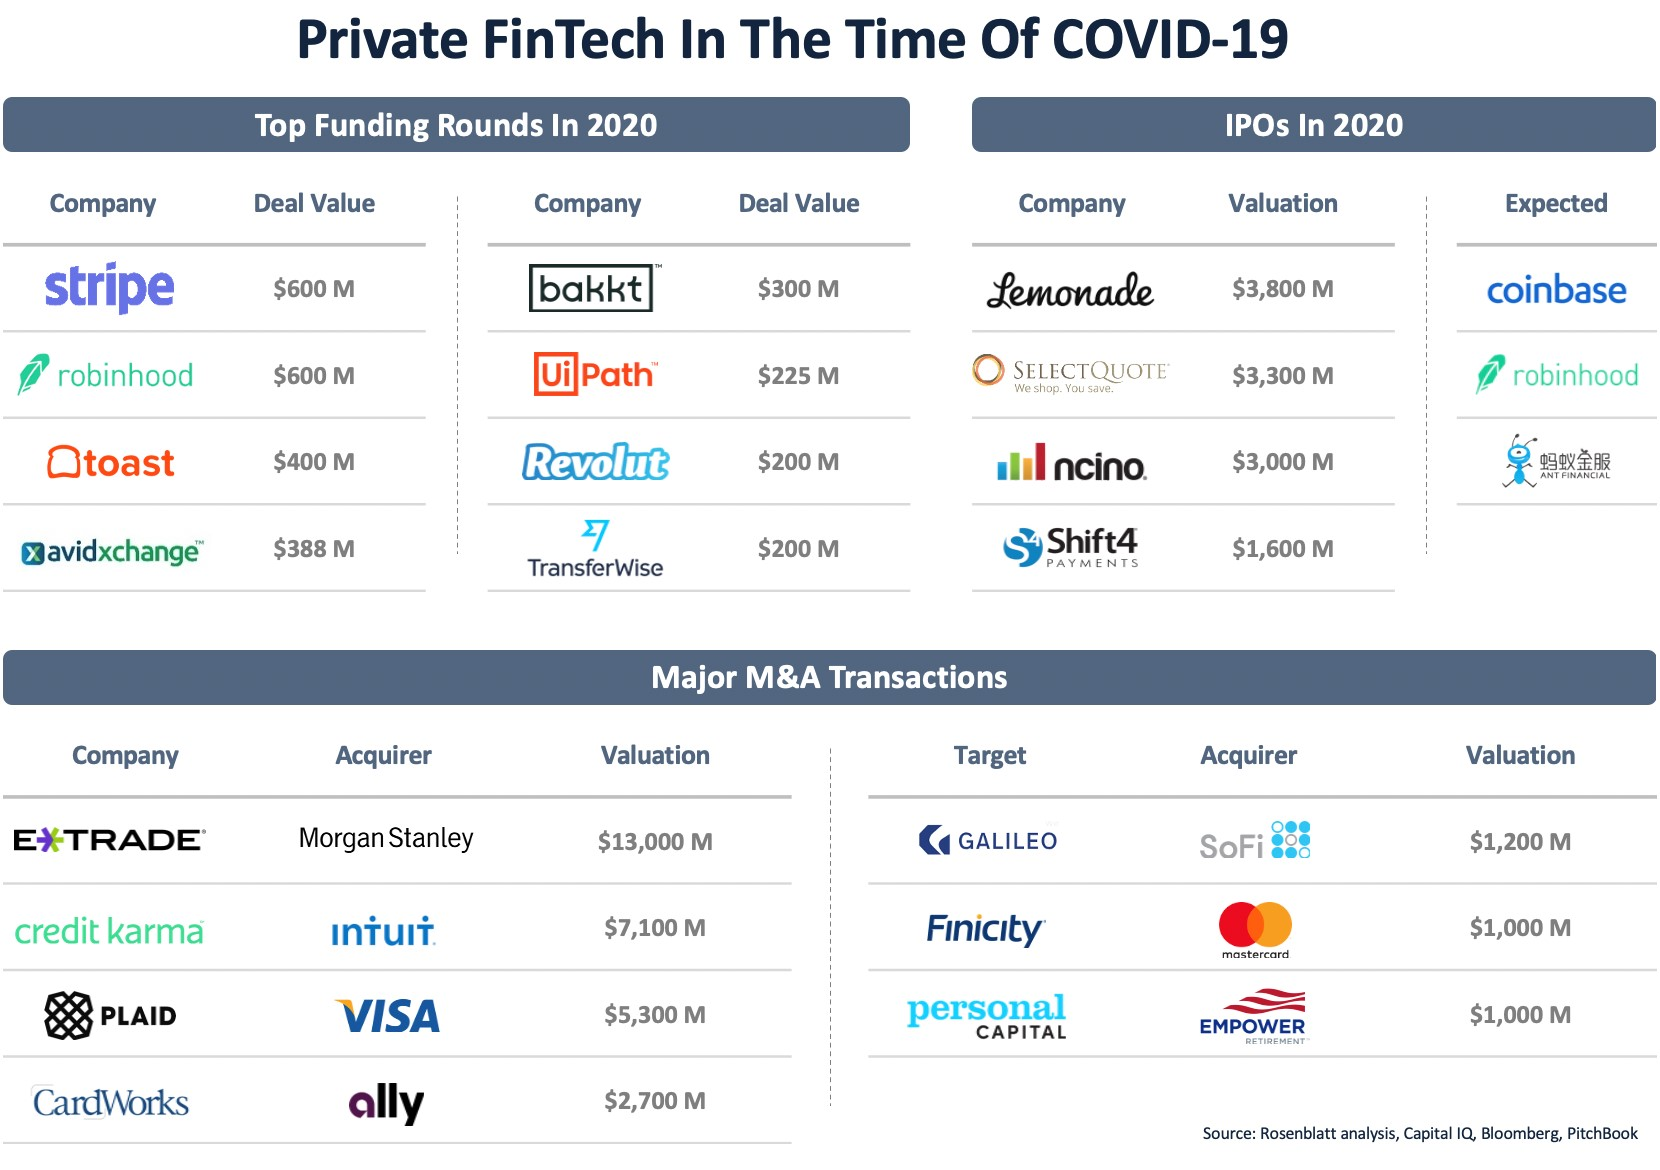 Reality Check on FinTech During COVID-19, And the Road Ahead